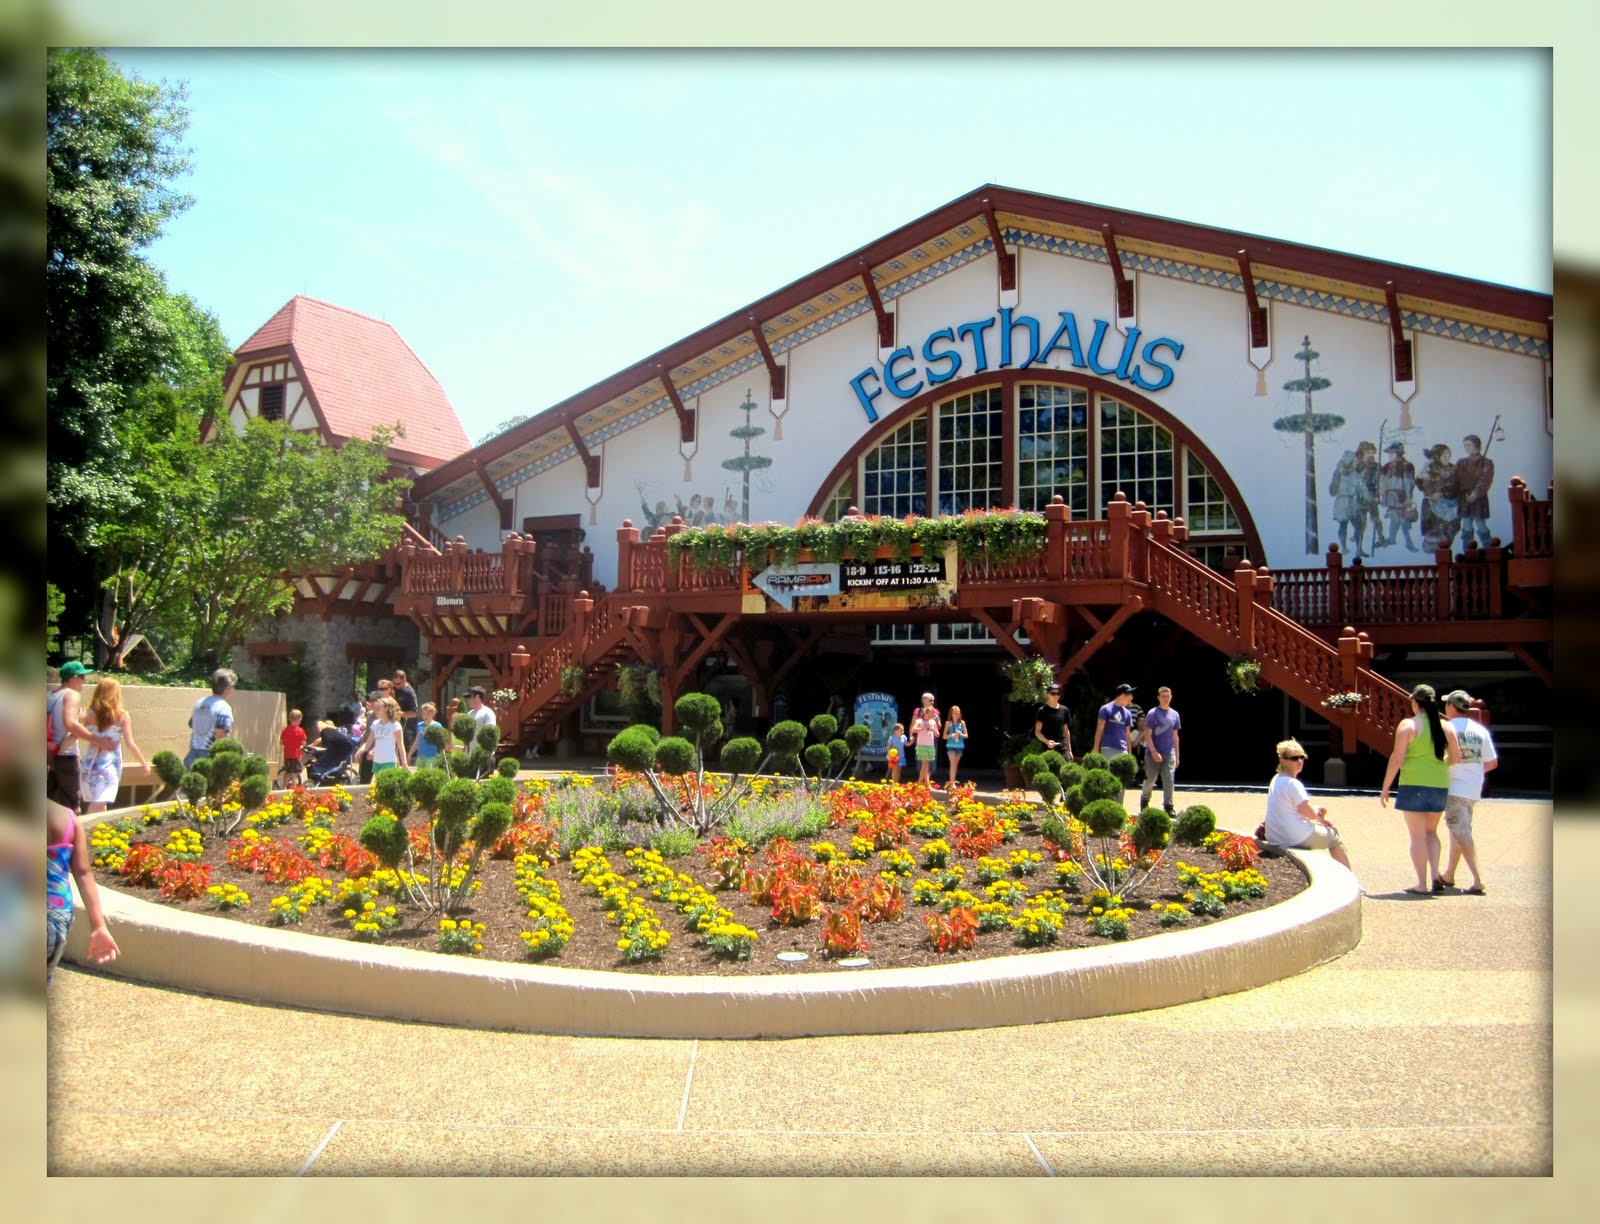 Living In Williamsburg Virginia Festhaus Busch Gardens